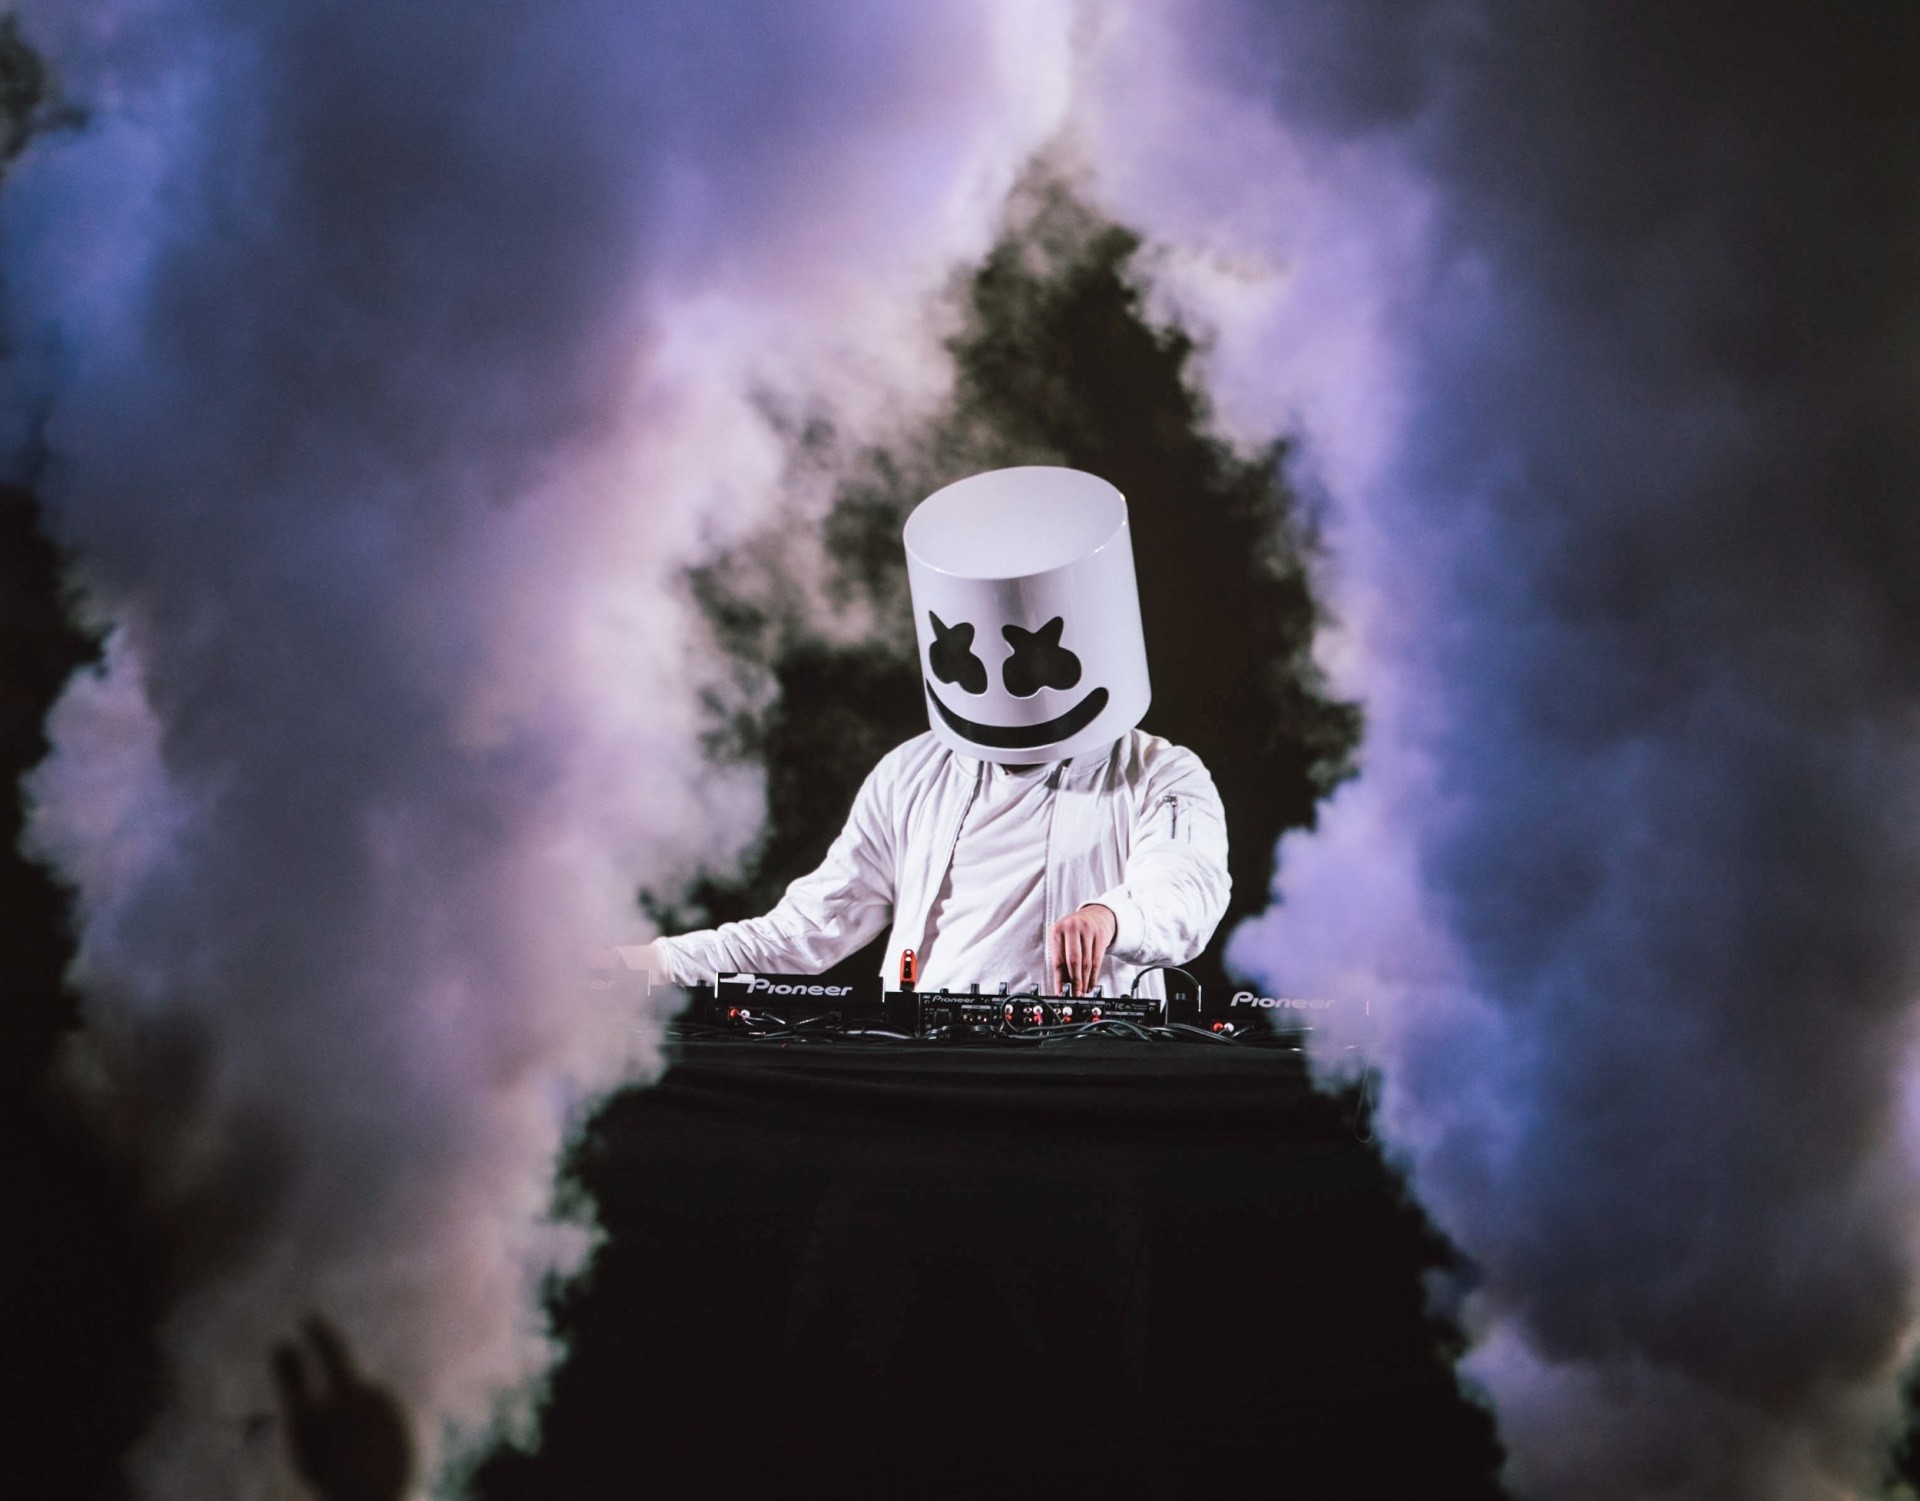 marshmello performing live hd wallpaper 64953